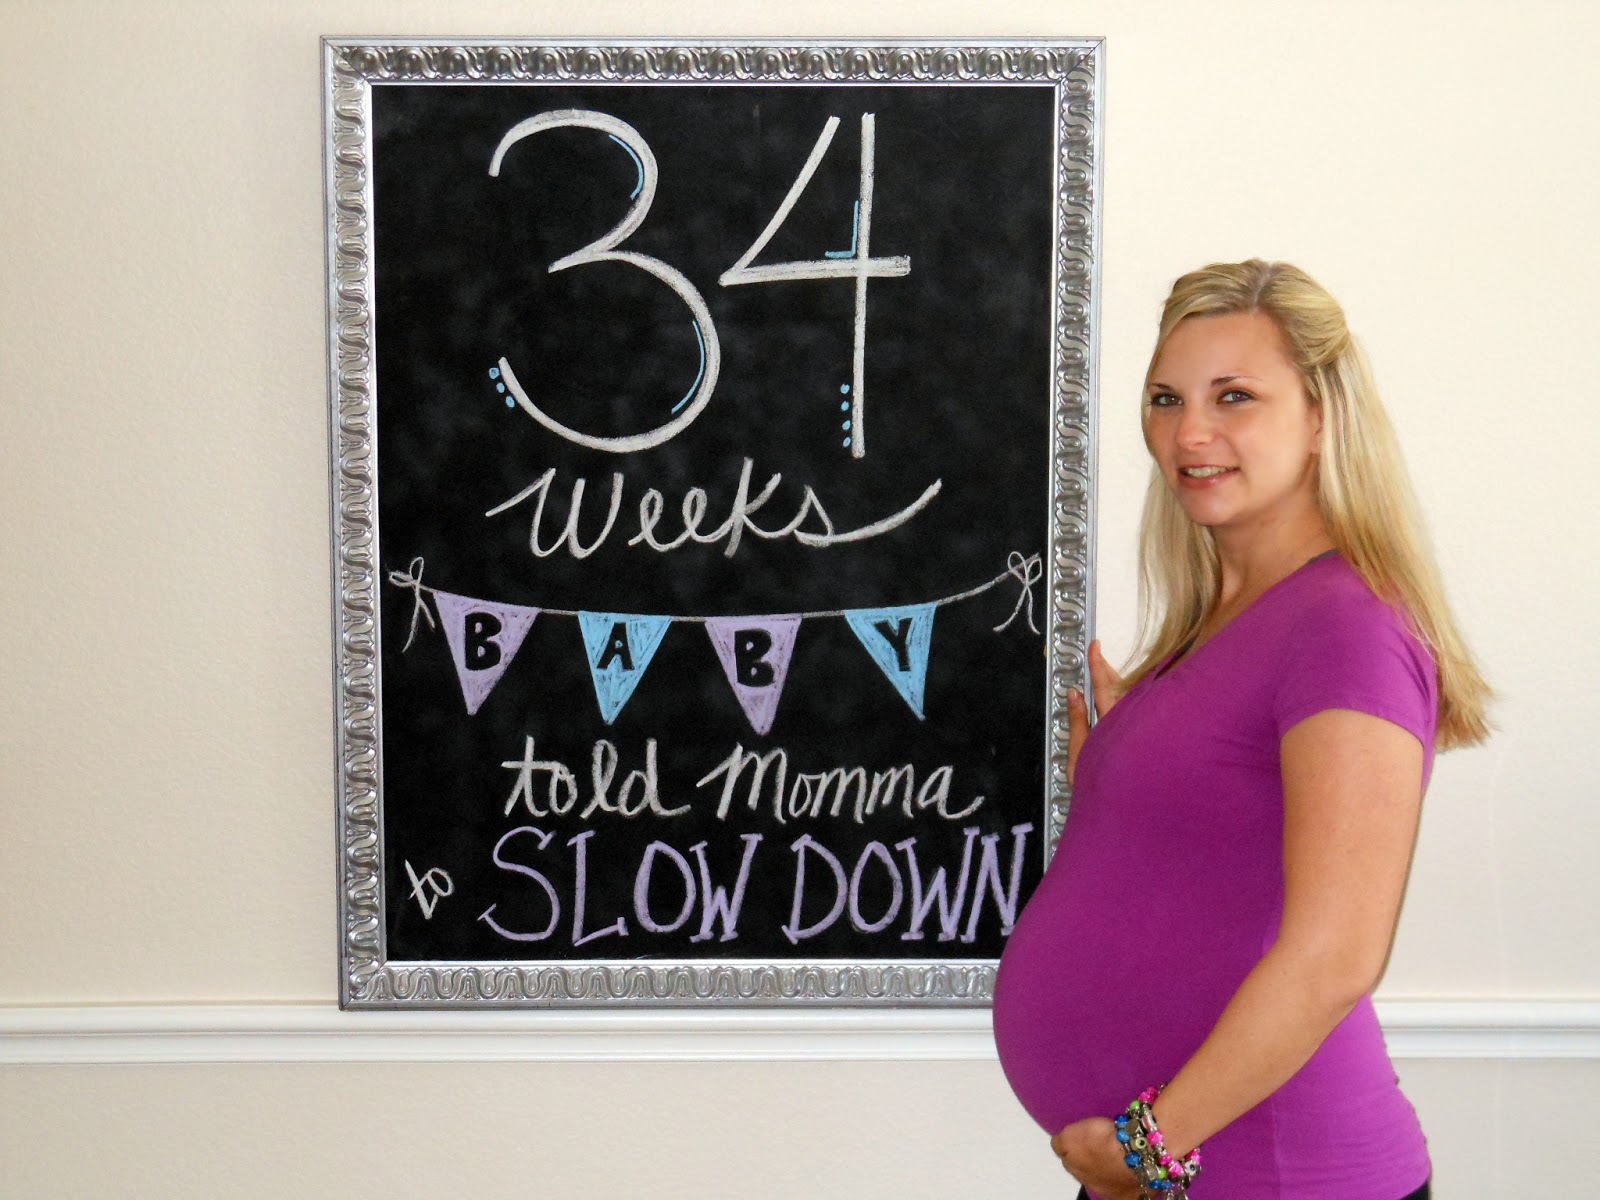 34 weeks pregnant picture